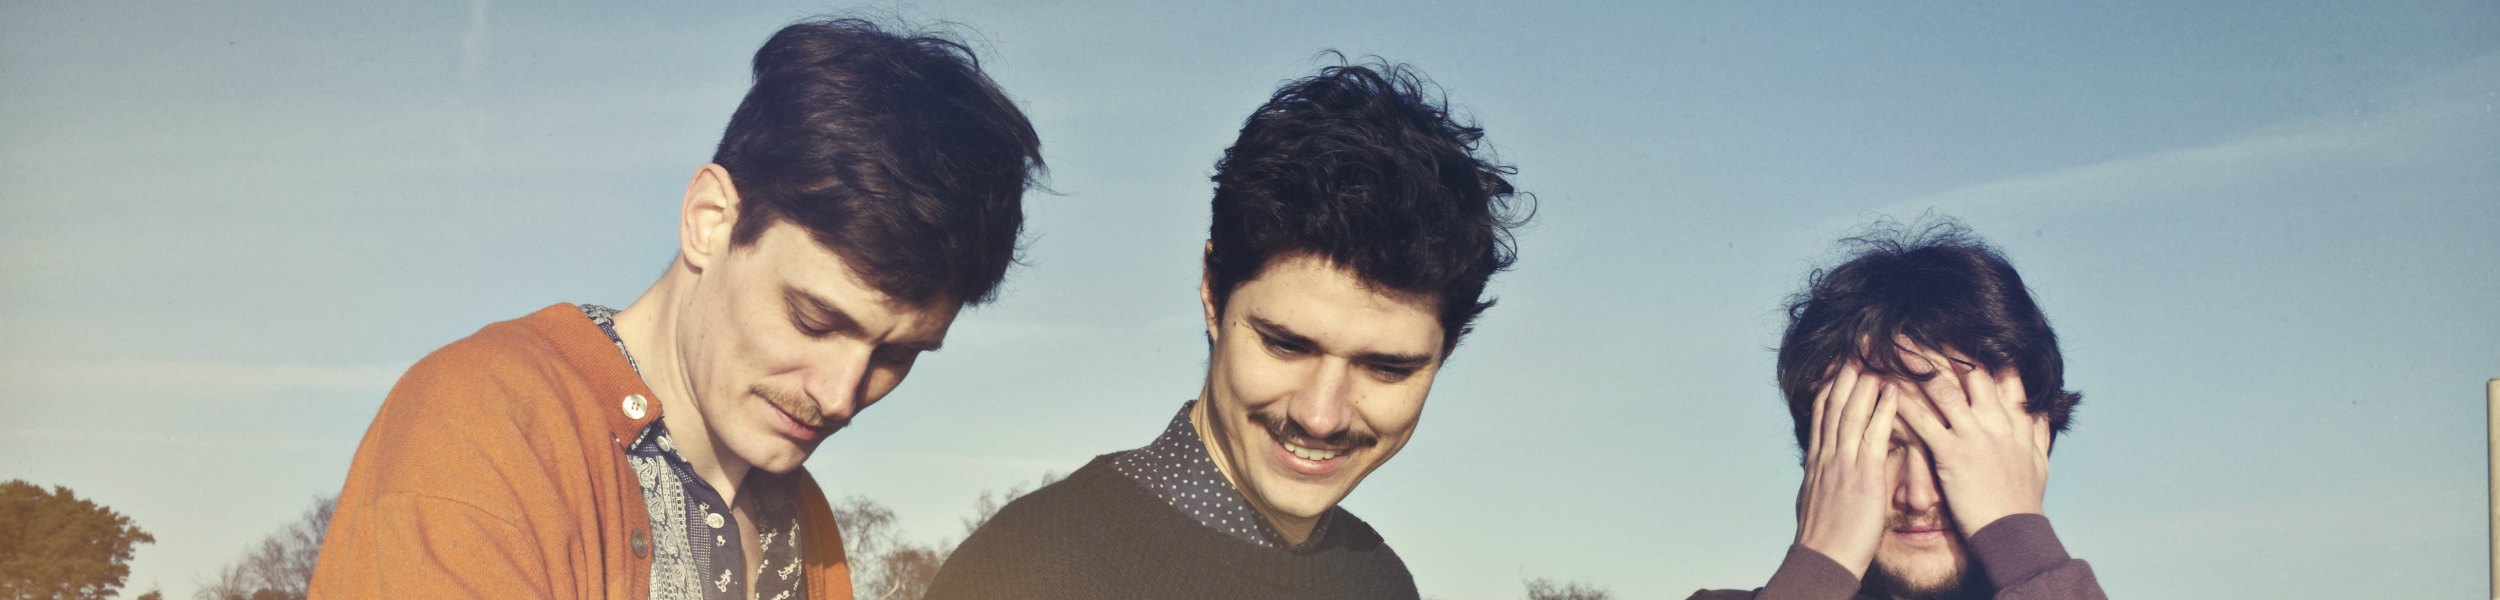 Efterklang - Efterklang announce UK premiere of 'The Ghost Of Piramida'